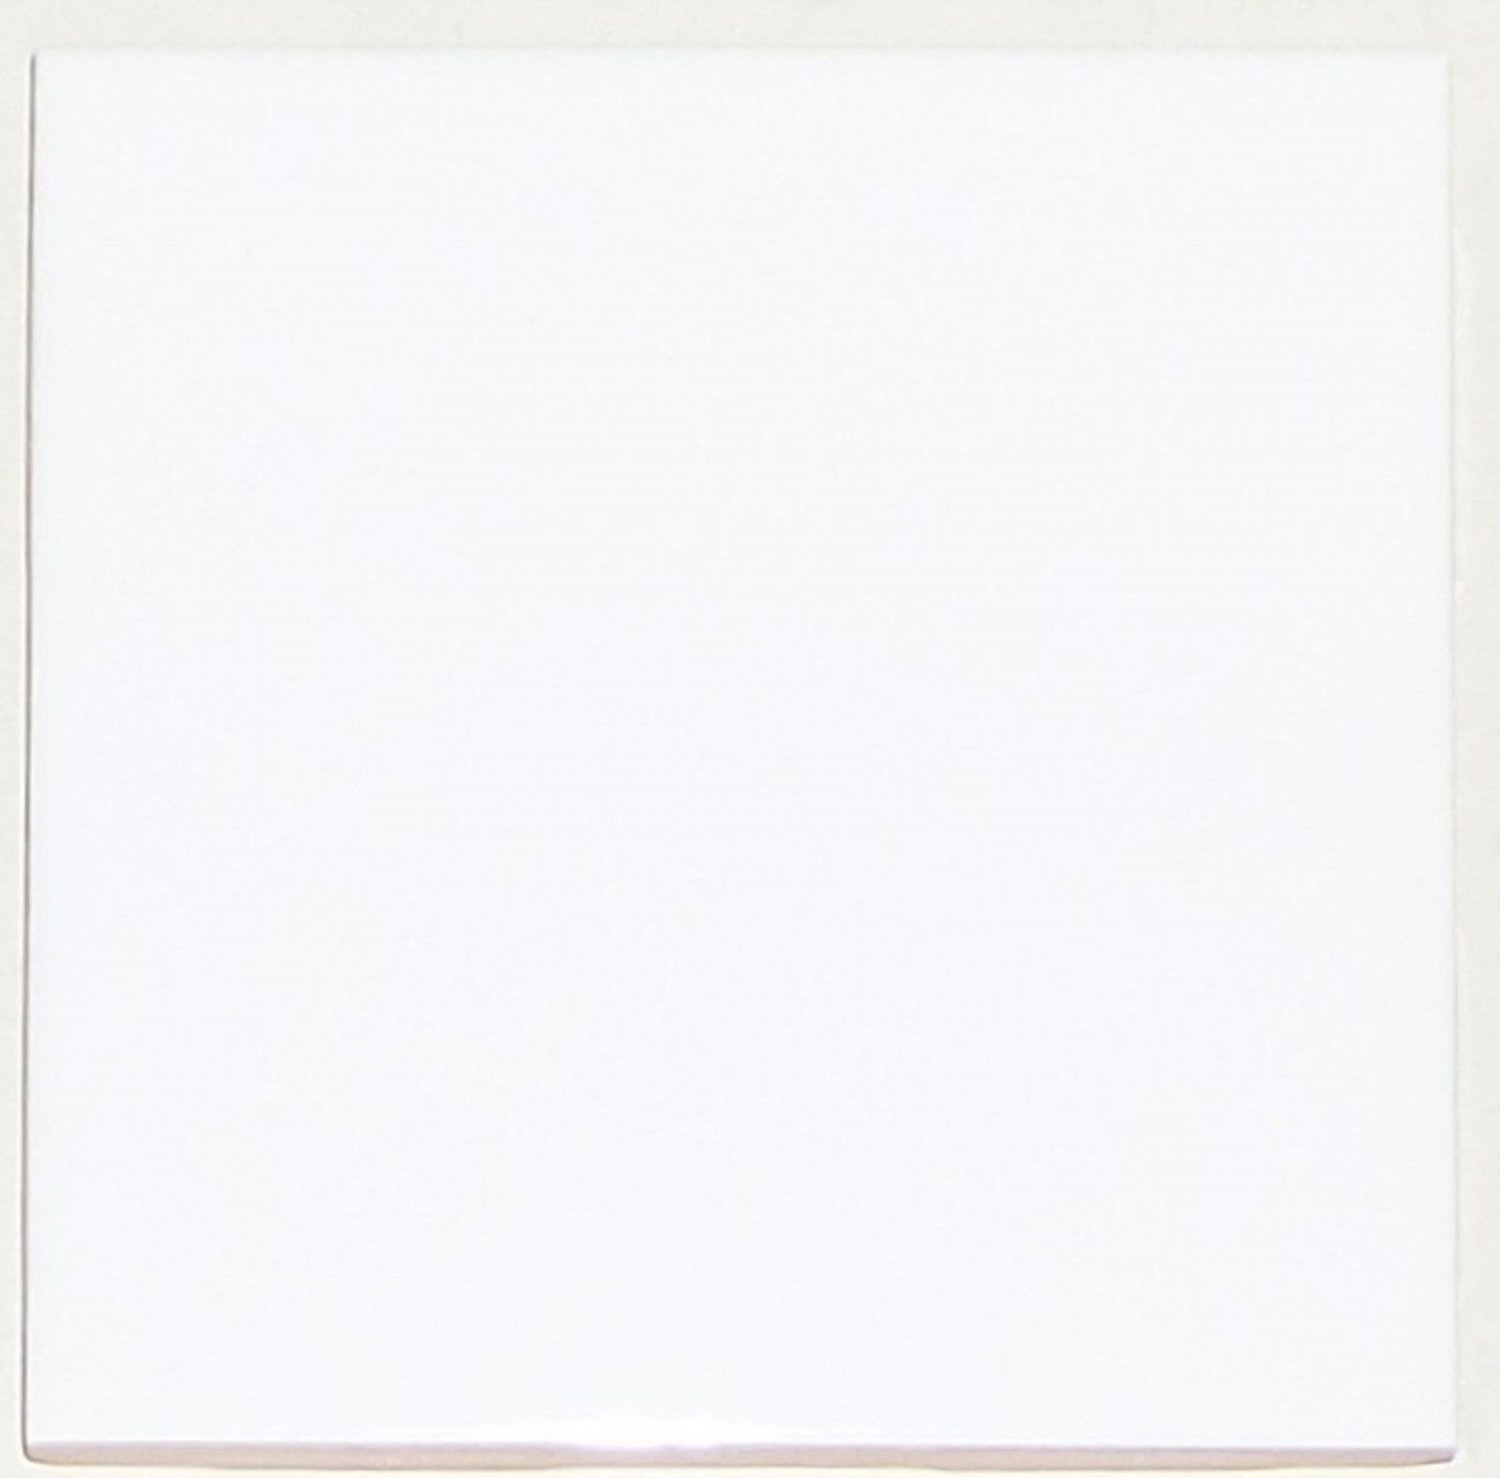 "Blank White Ceramic Wall Tile 4.25""x4.25"" Matches Mottles Kiln Fired US Ceramic"